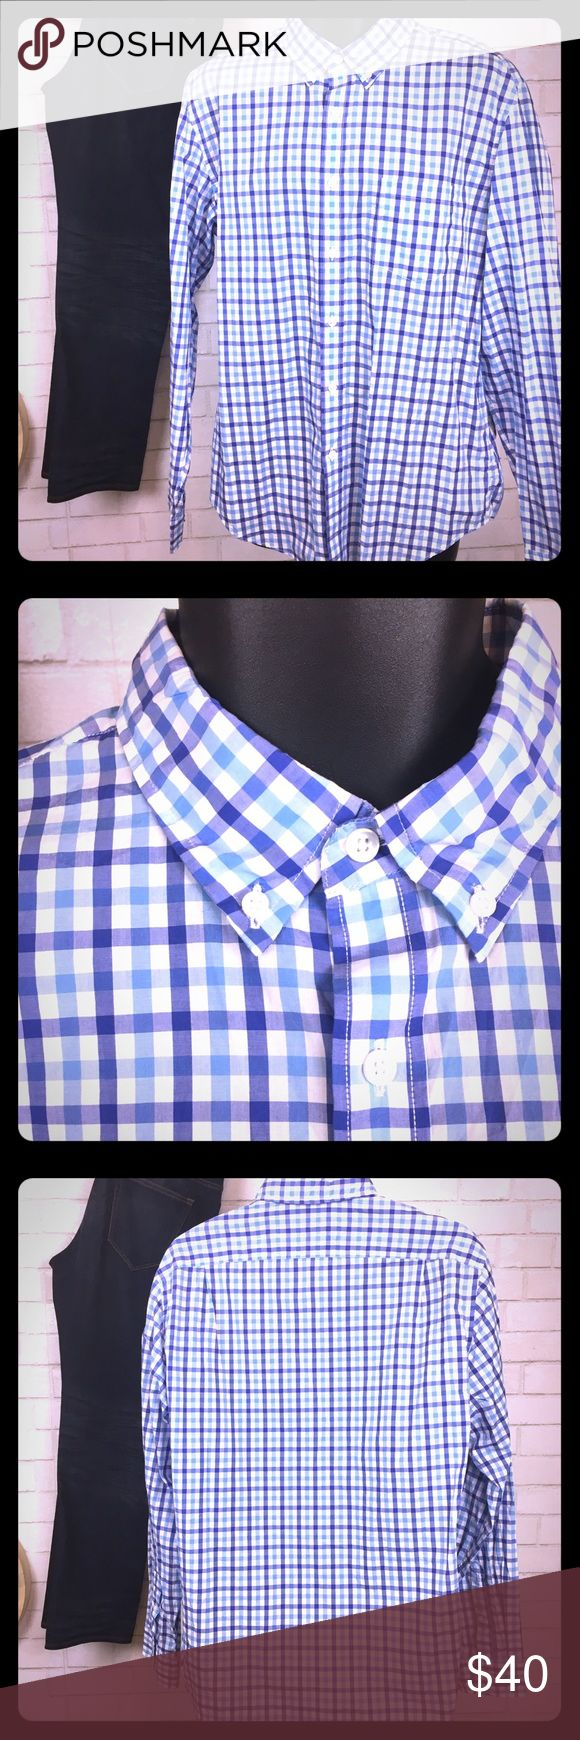 J.Crew Light Weight Cotton Button Down Great condition shirt, only stain is small sharpie line through tag, see photos. No other stains or tears. Plaid design with purple and blue. J. Crew Shirts Dress Shirts